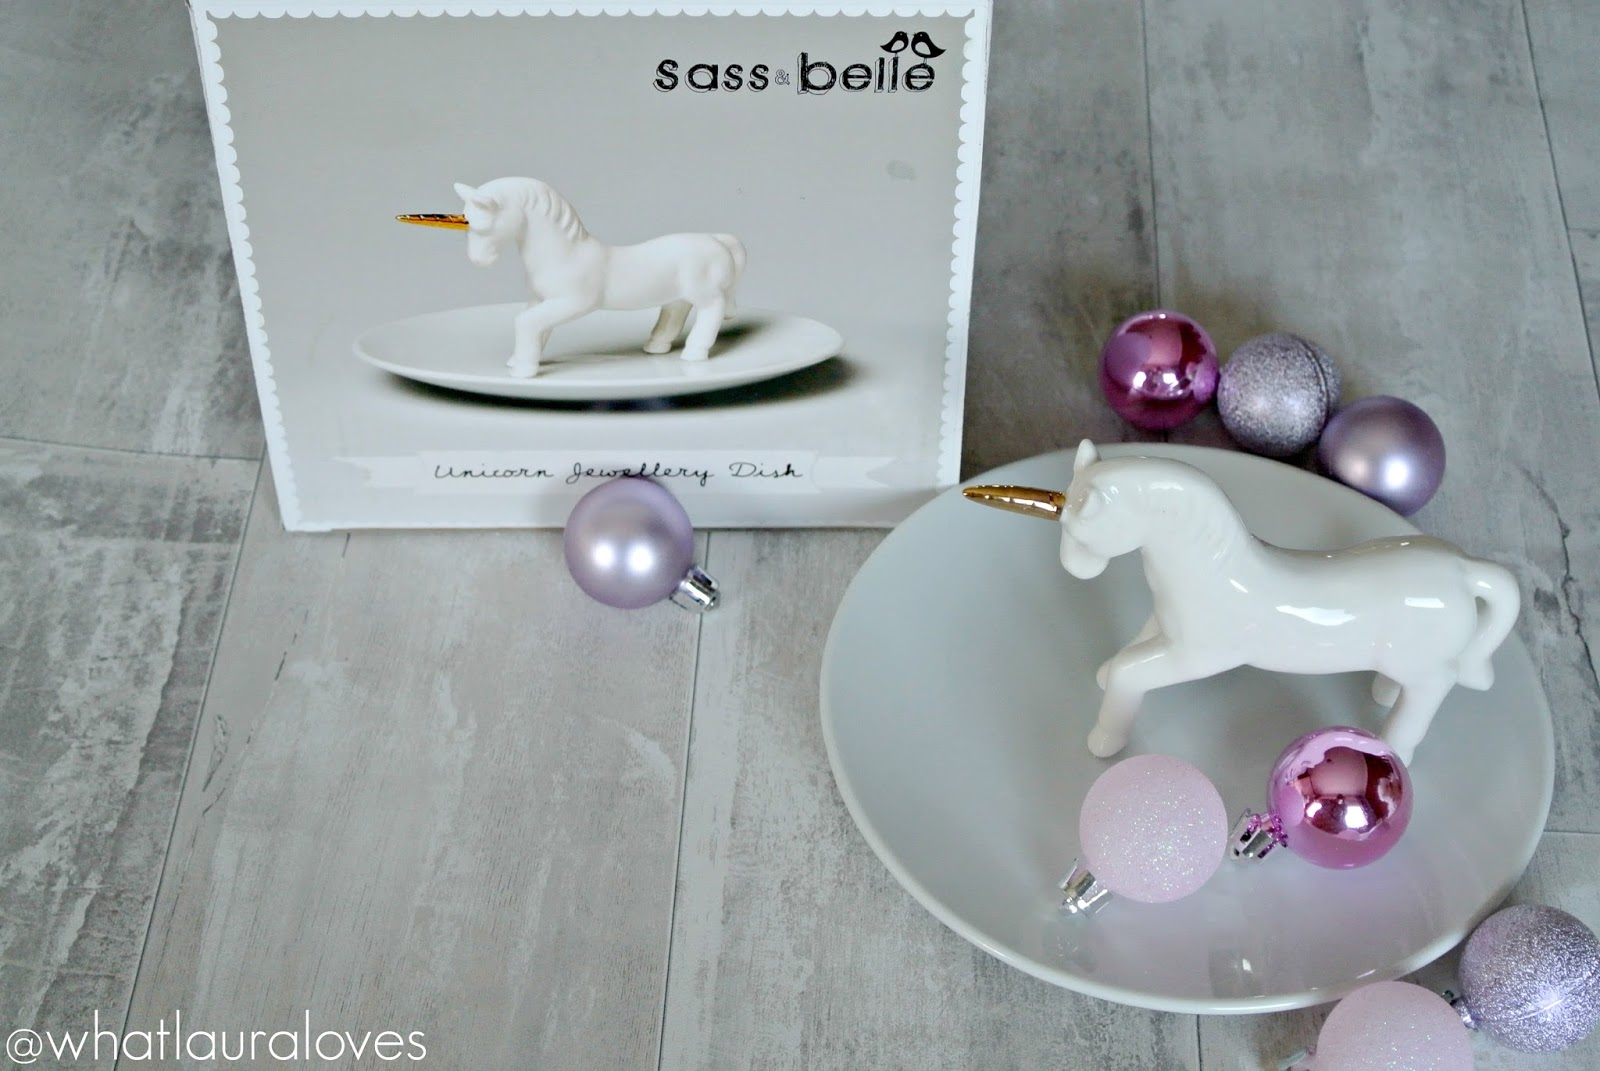 Christmas Gift Guide Flamingo Gifts Sass and Belle Unicorn Jewellery Dish